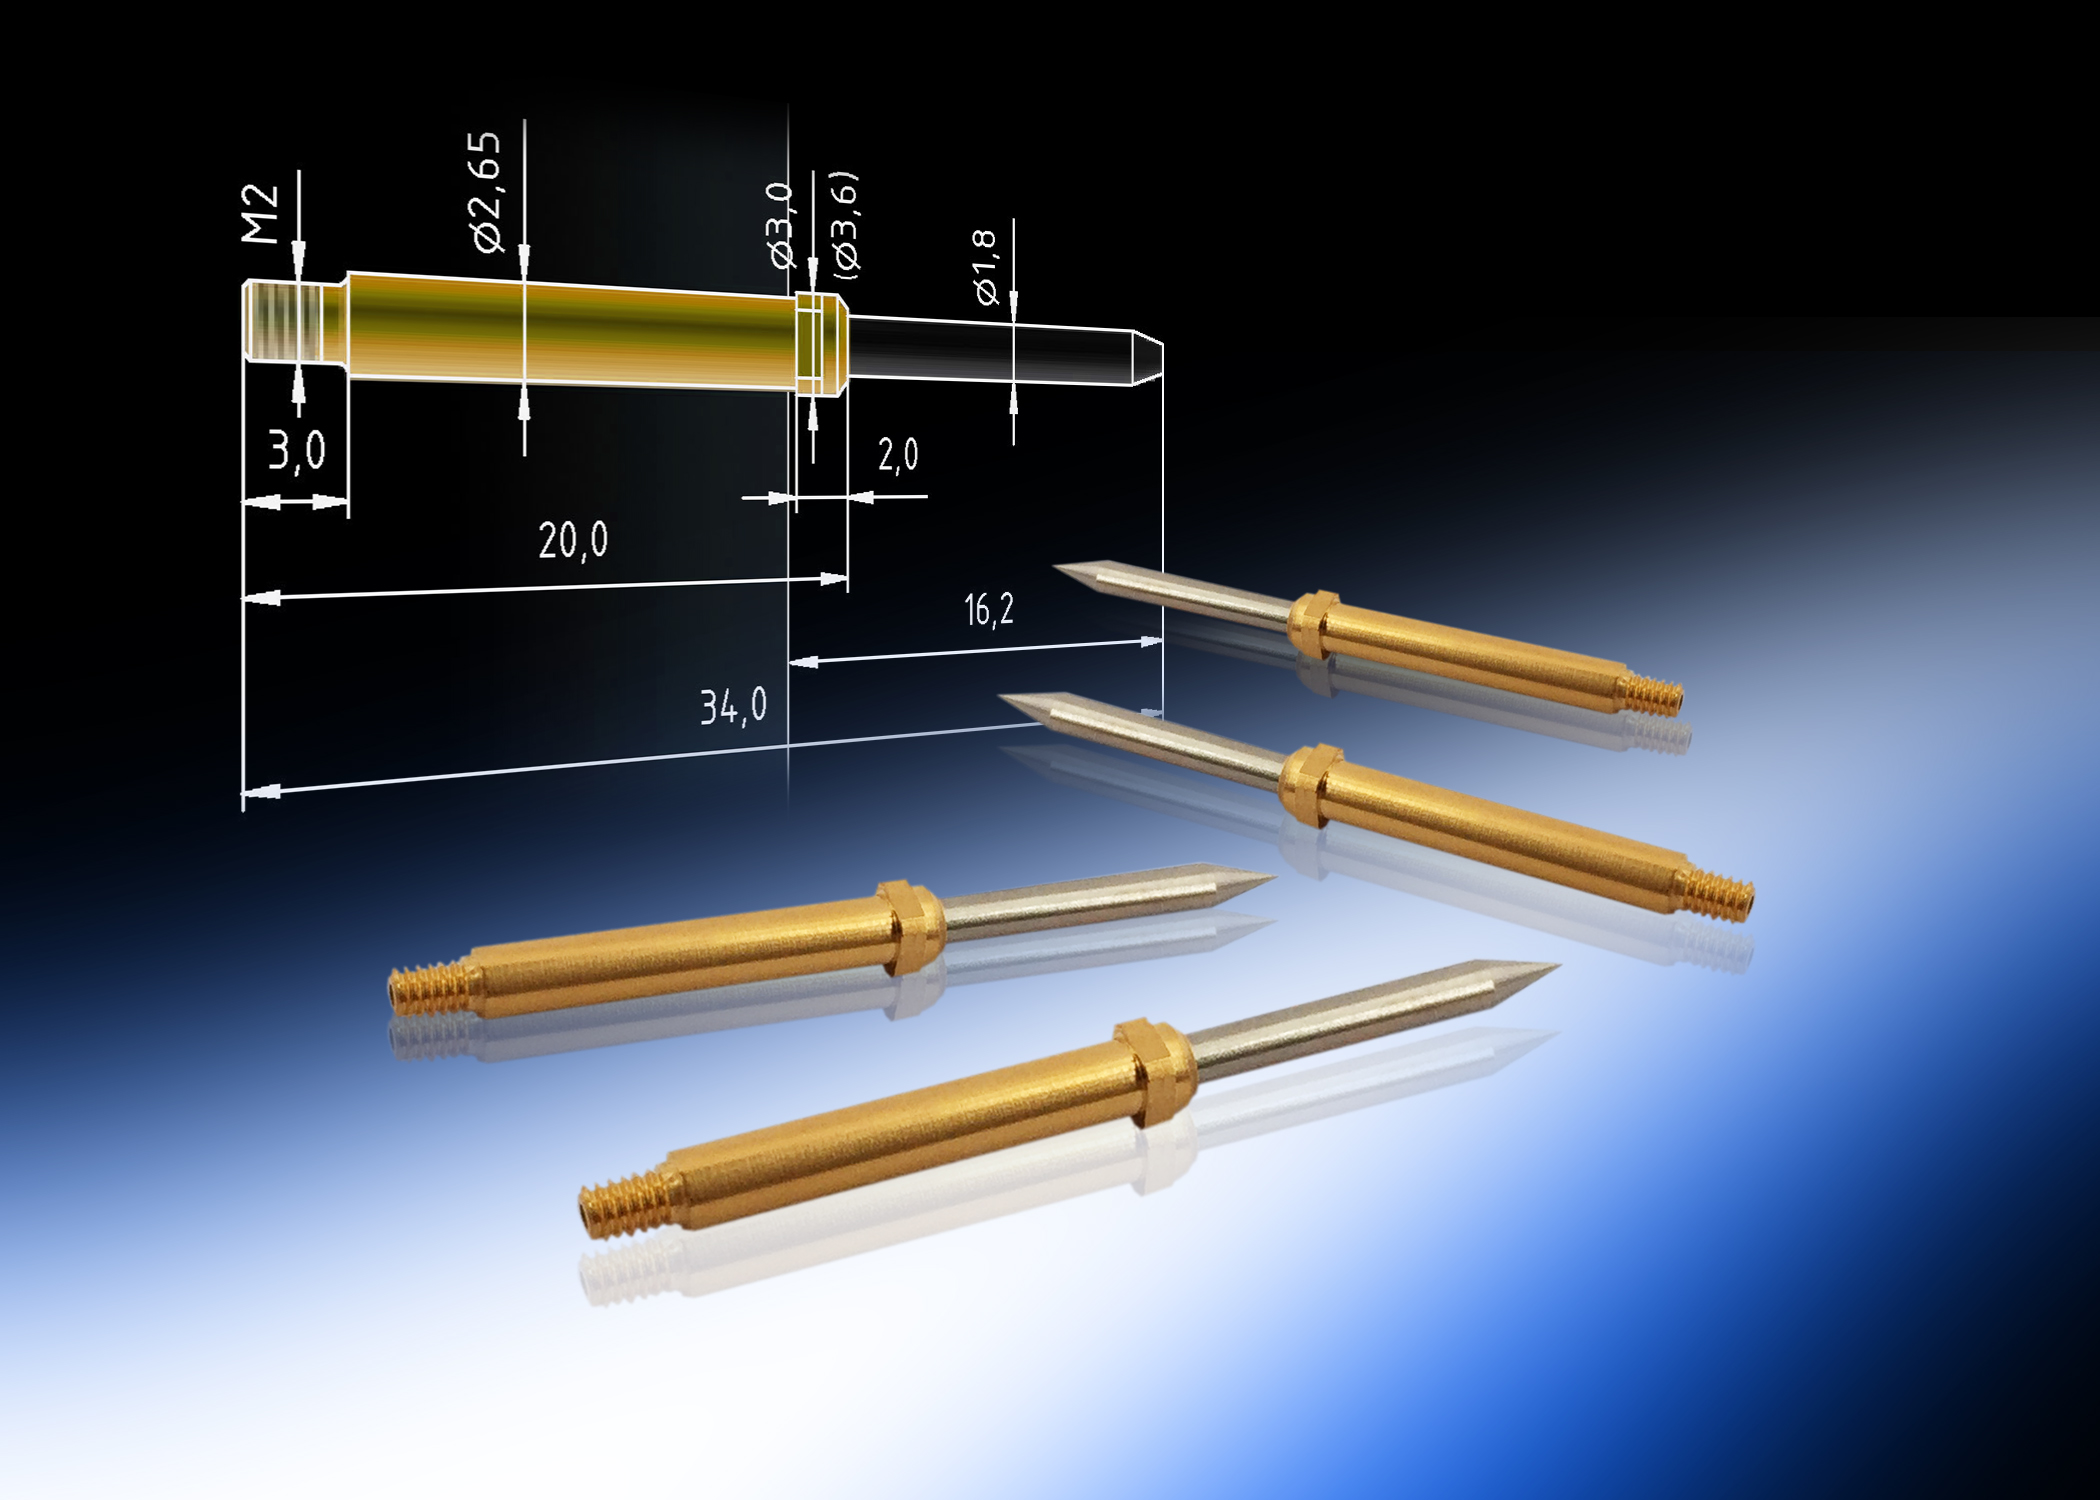 RF contact probe for high-speed data connectors